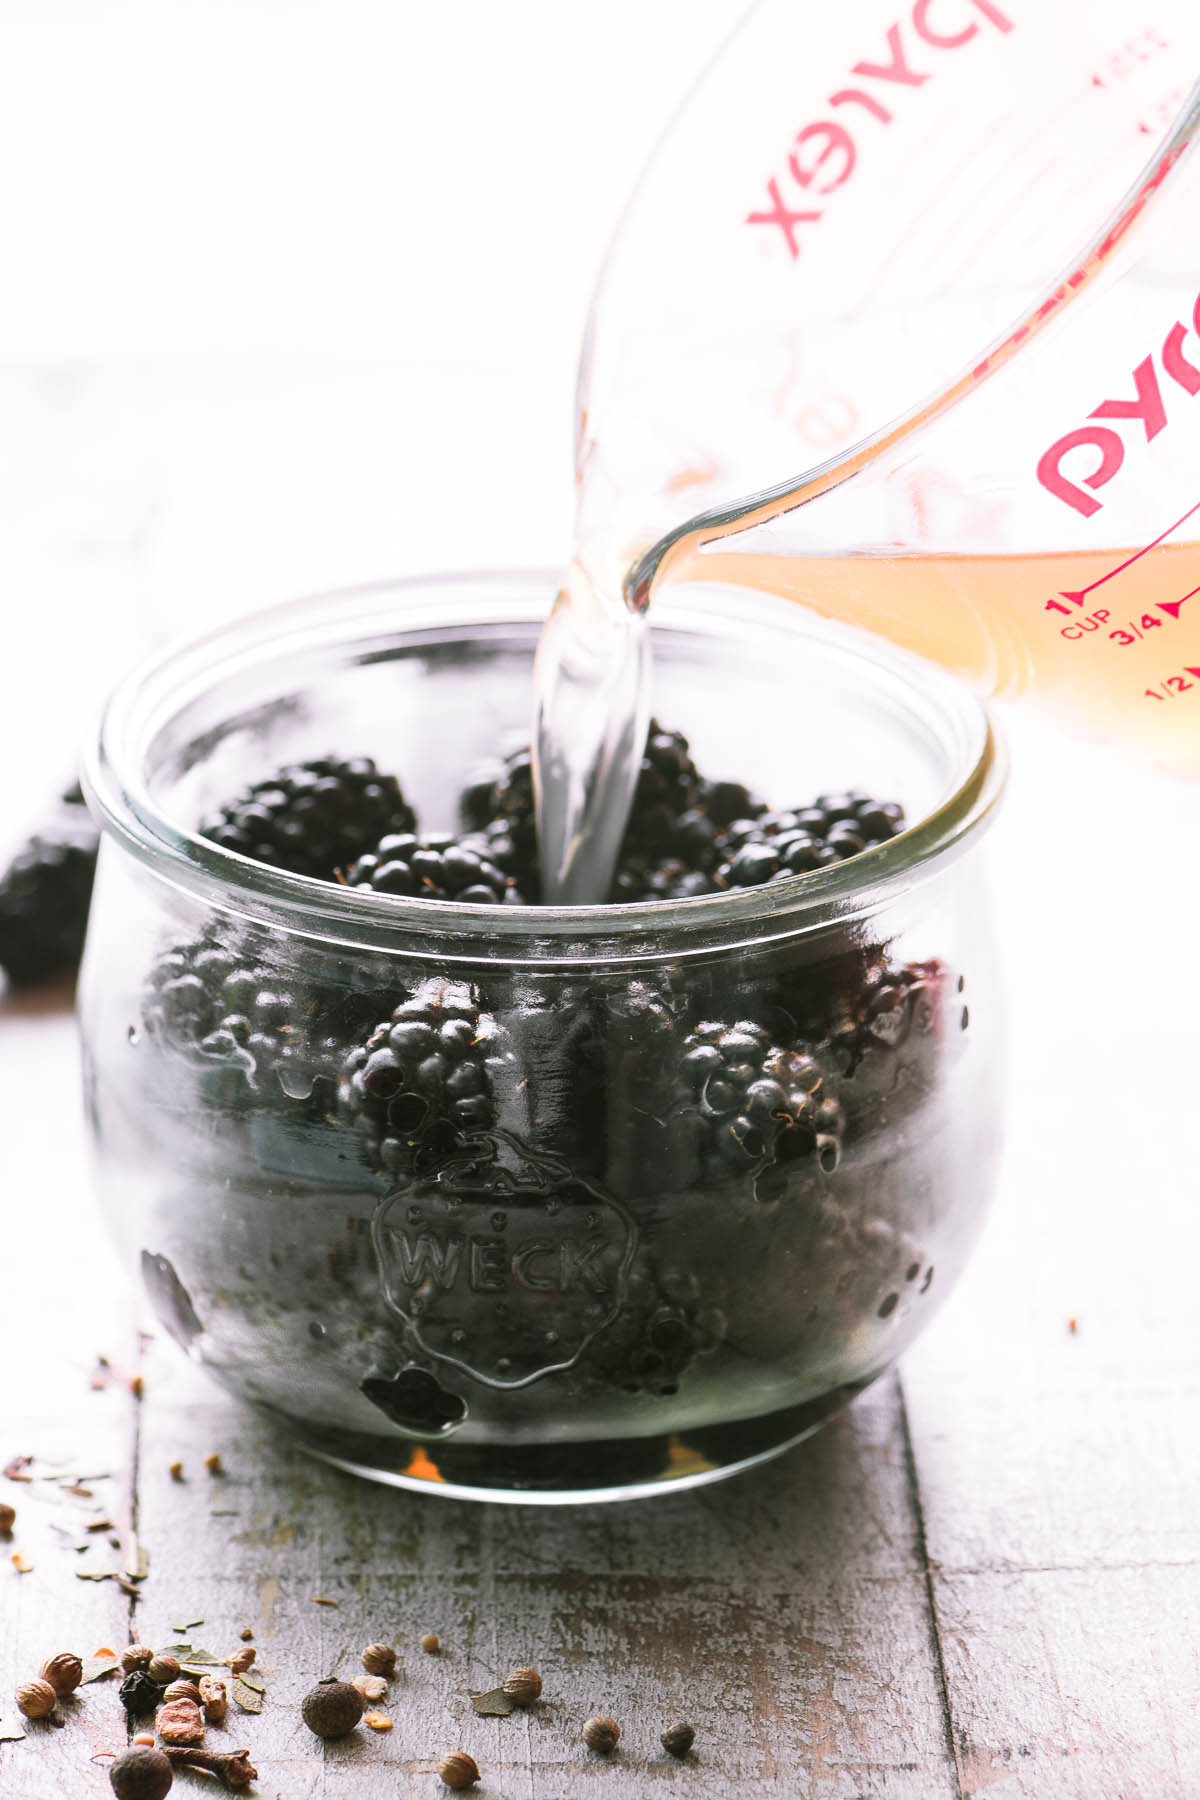 Pouring pickling brine into a jar of fresh blackberries